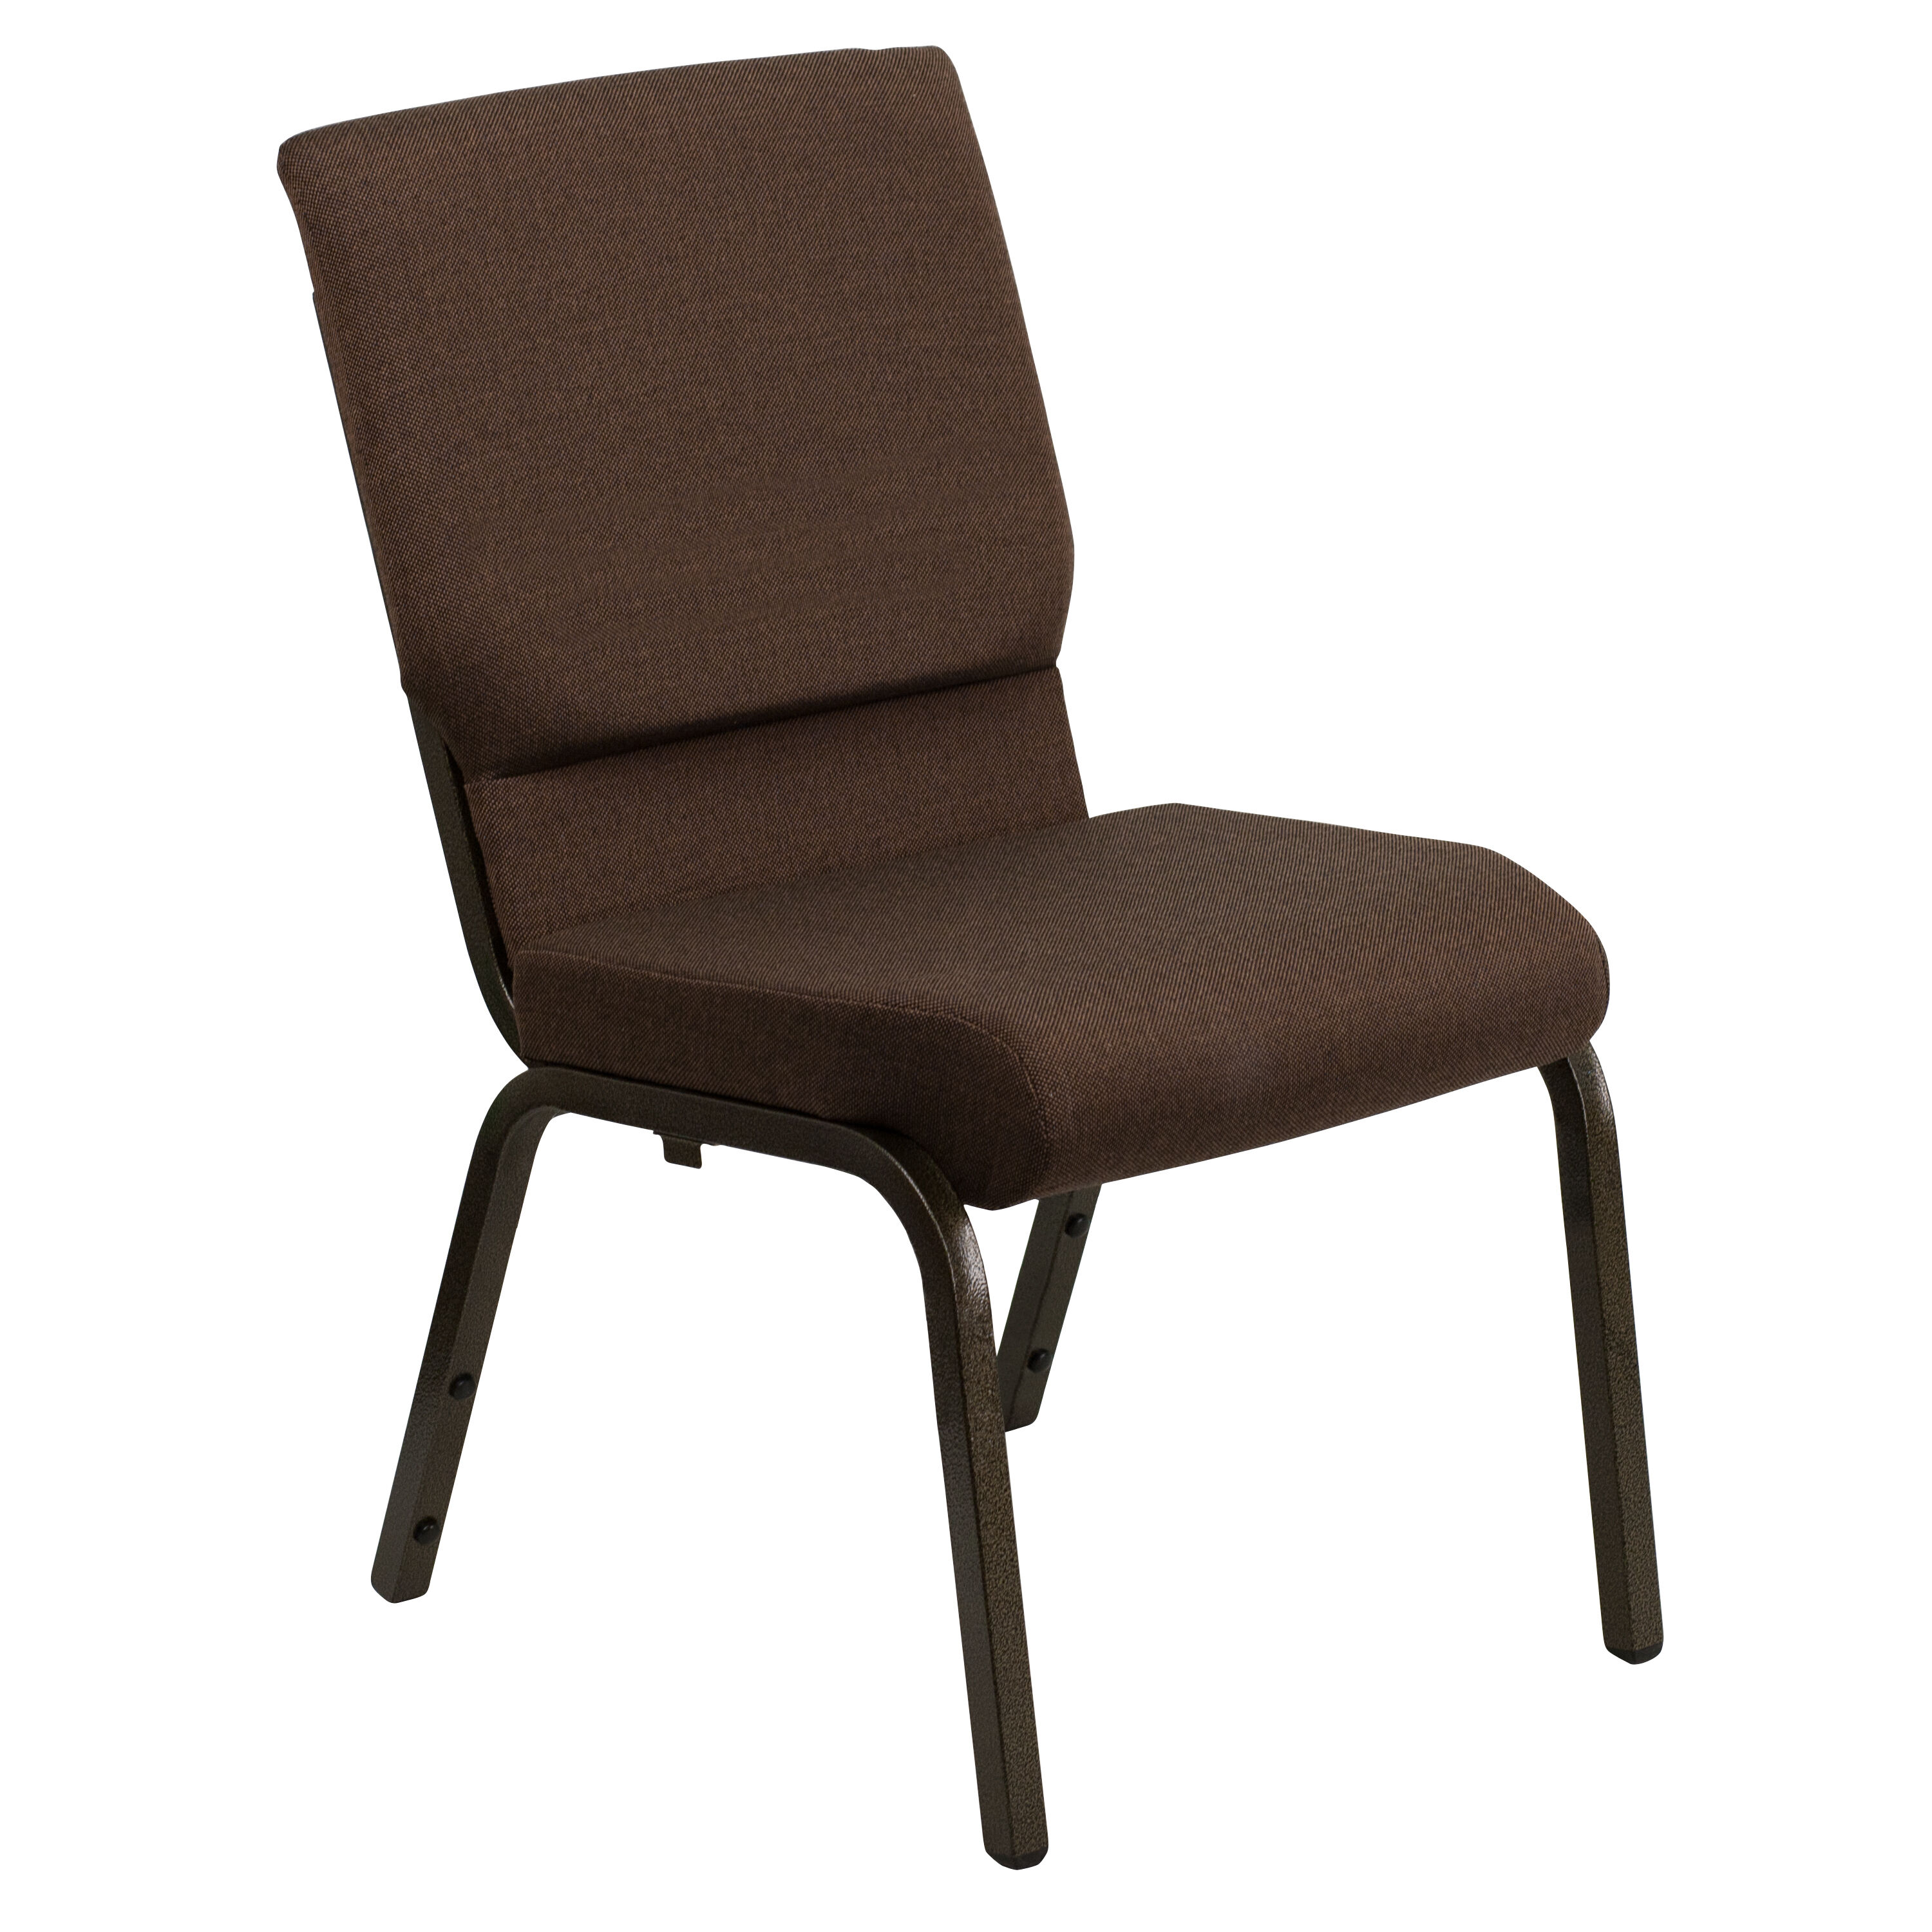 stackable church chairs ethan allen chair covers brown fabric xu ch 60096 bn gg